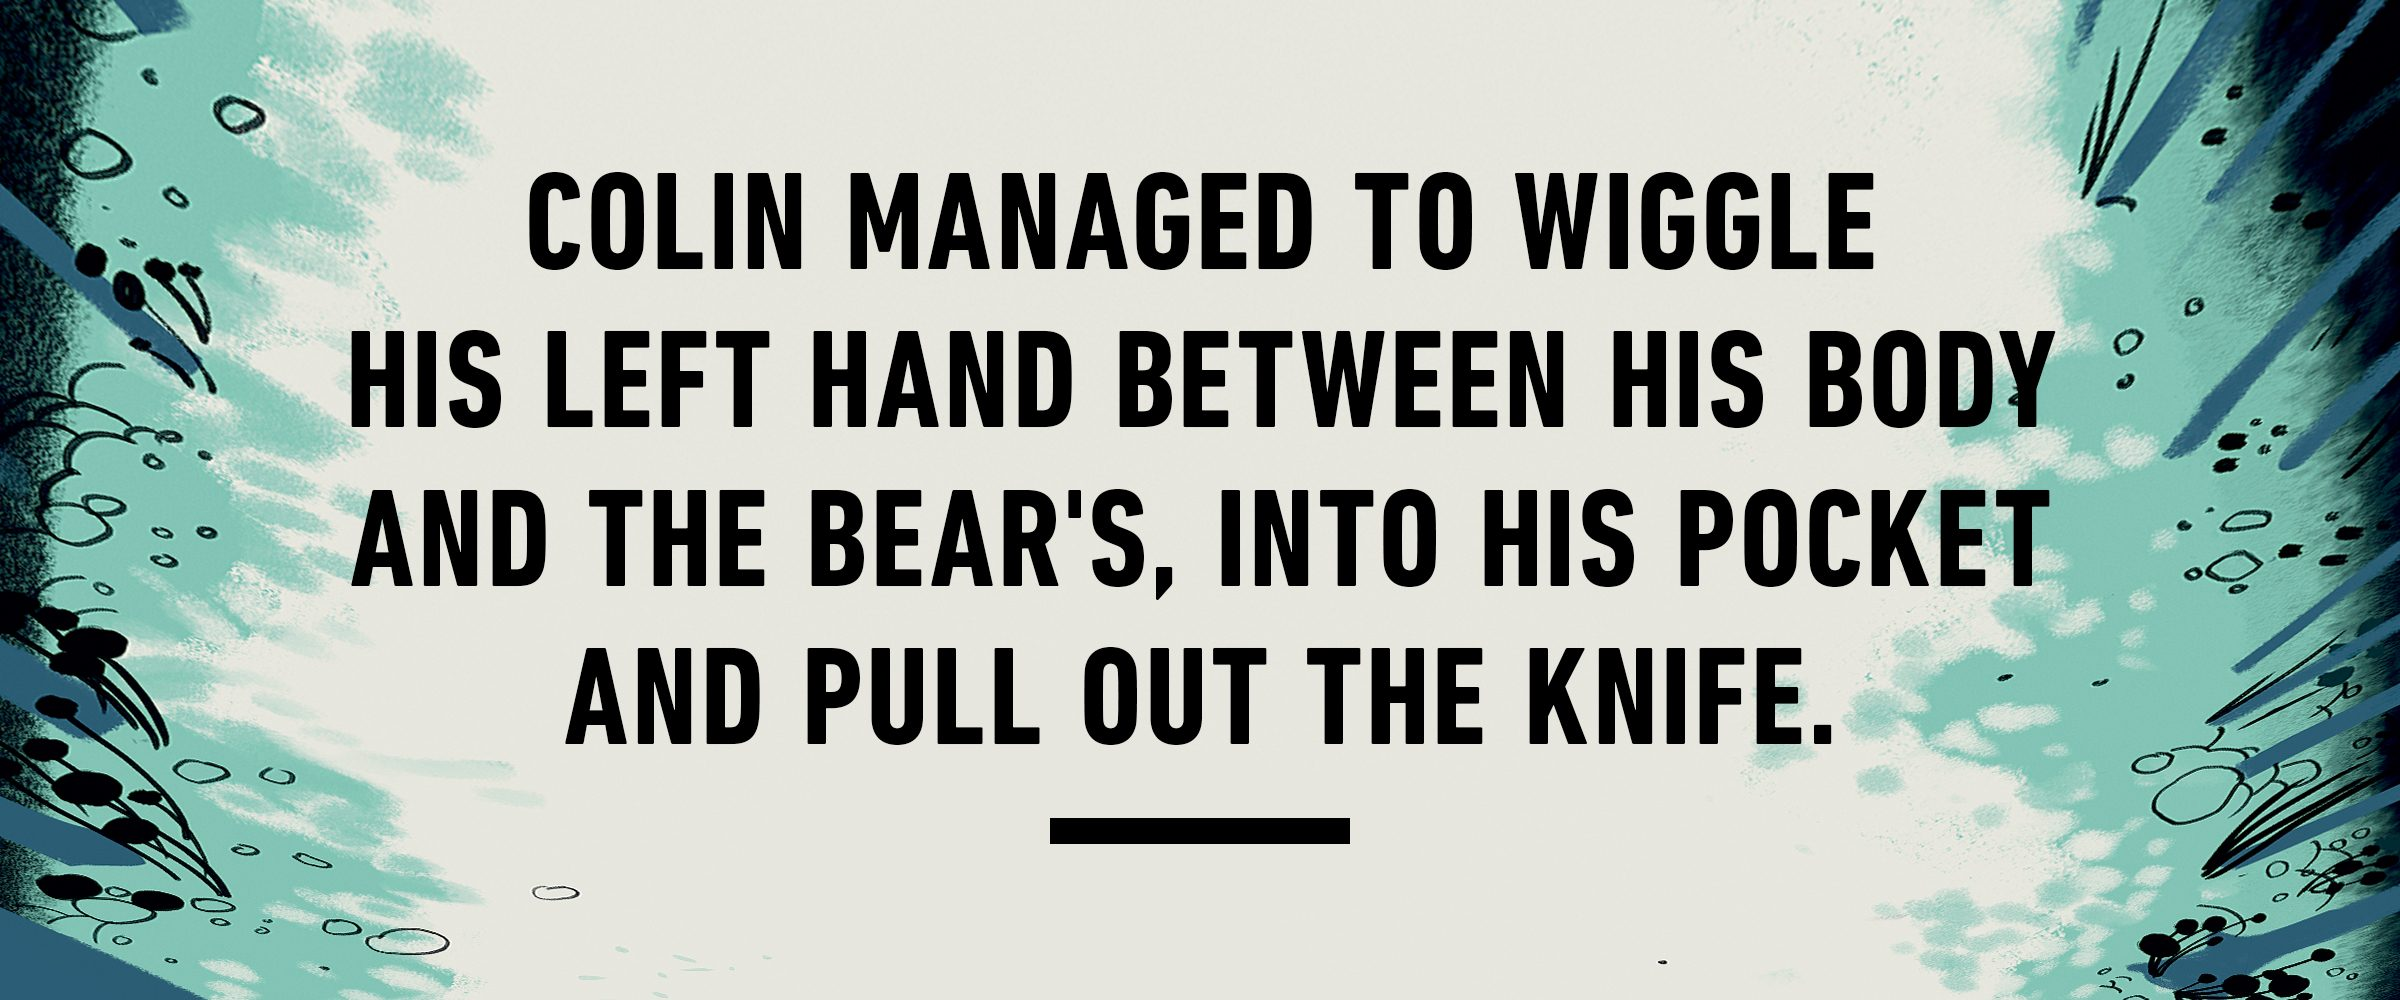 text: Colin managed to wiggle his left hand between his body and the bear's, into his pocket and pull out the knife.